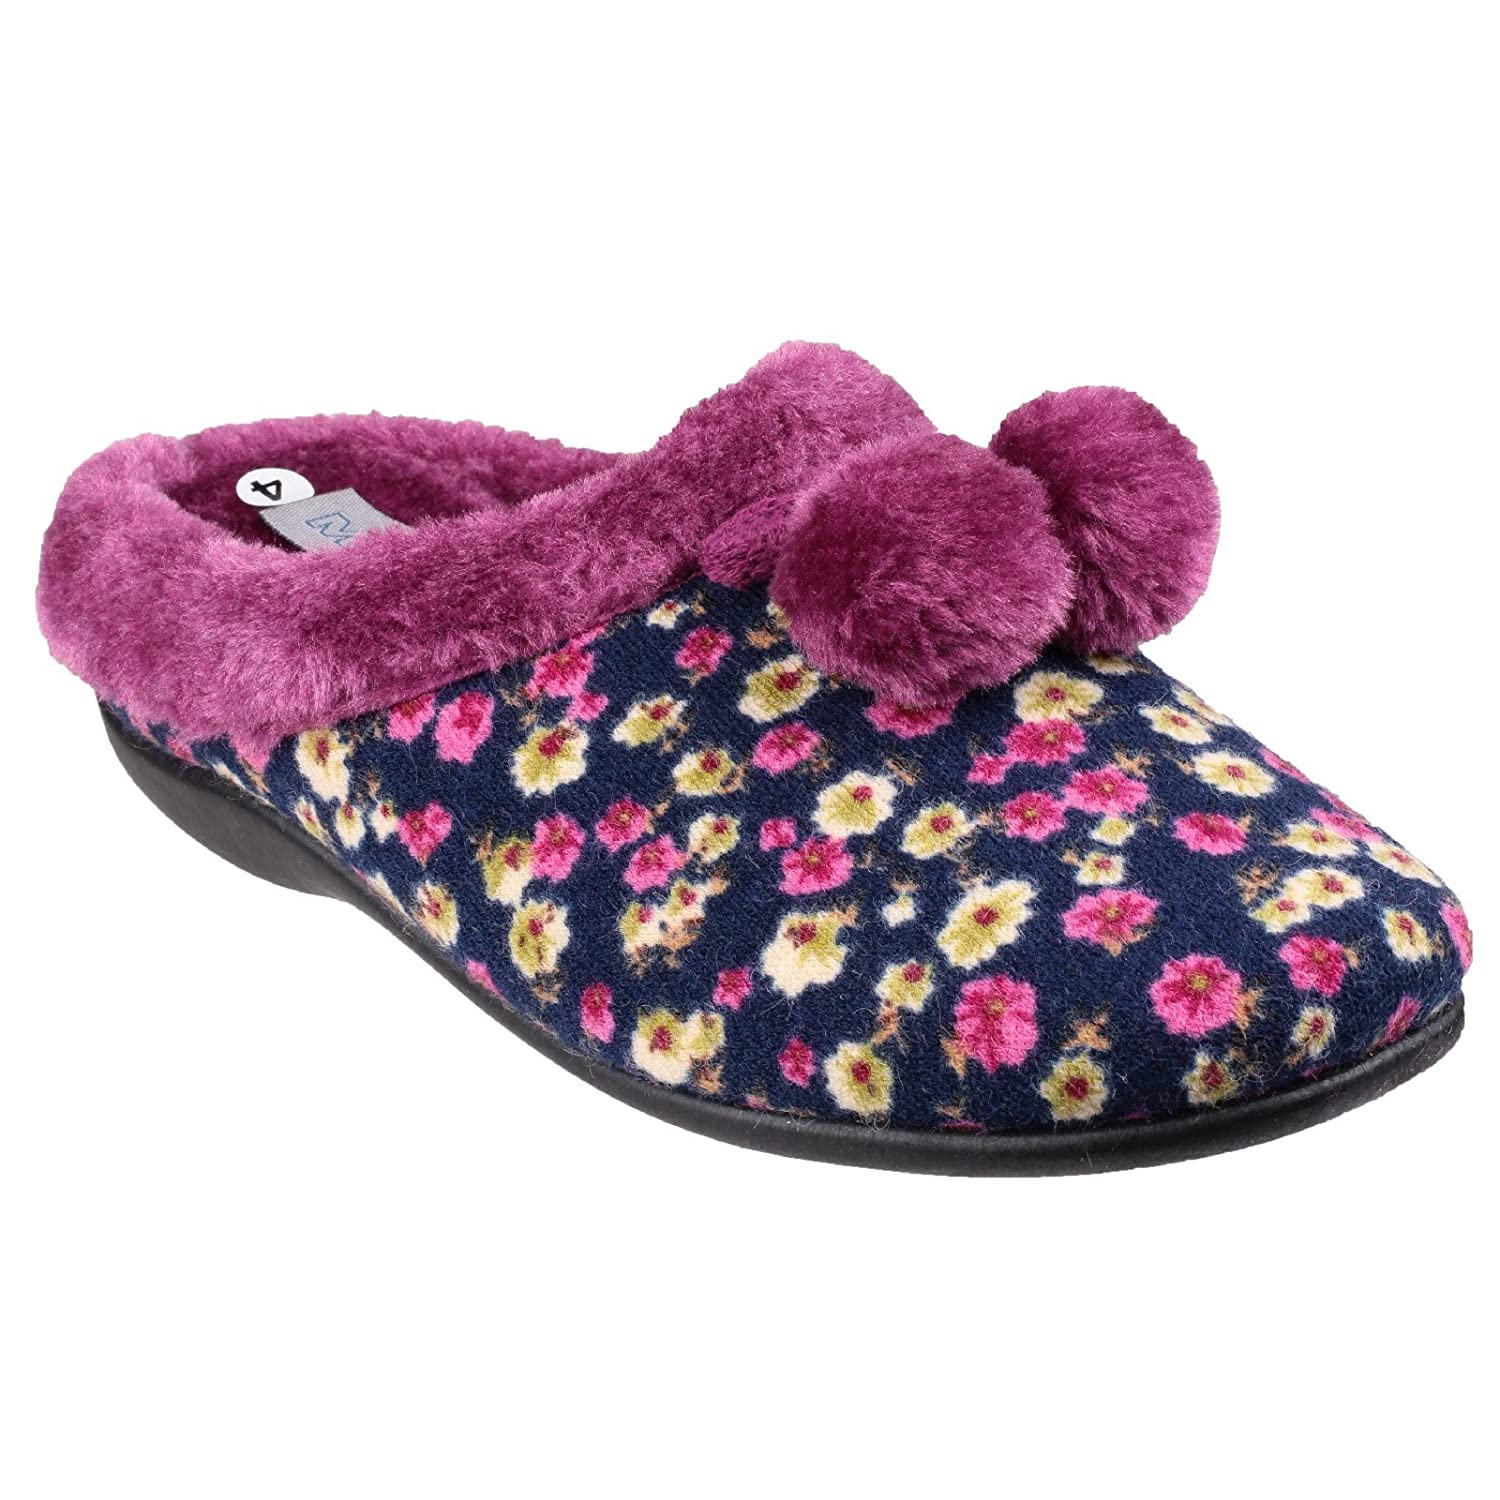 Mirak Chabilis Femmes Chabilis 19511 Fermeture Mules Pantoufles Chaussures Chaussons Slip-on Fermeture Prune 8eb7a76 - fast-weightloss-diet.space